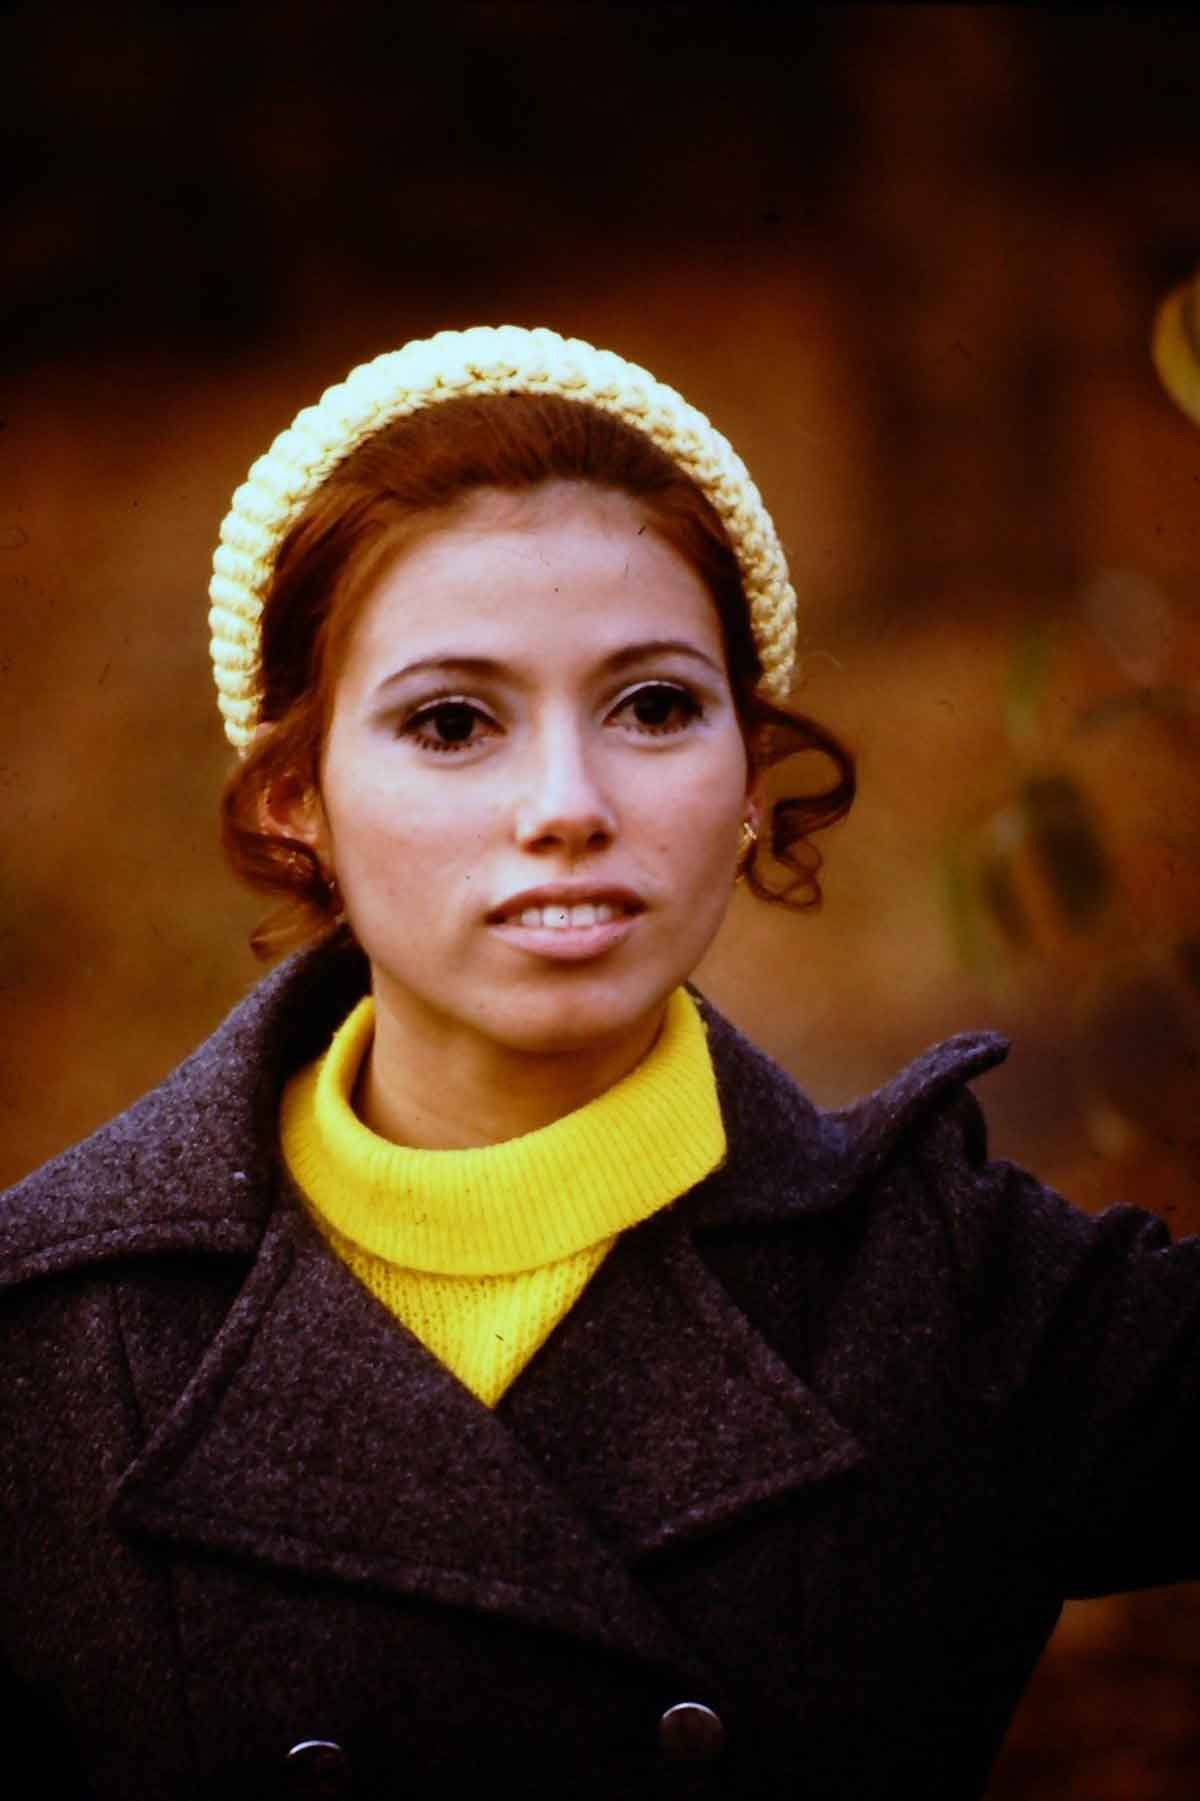 straight-out-of-the-60s - found photos of women in the 1960s